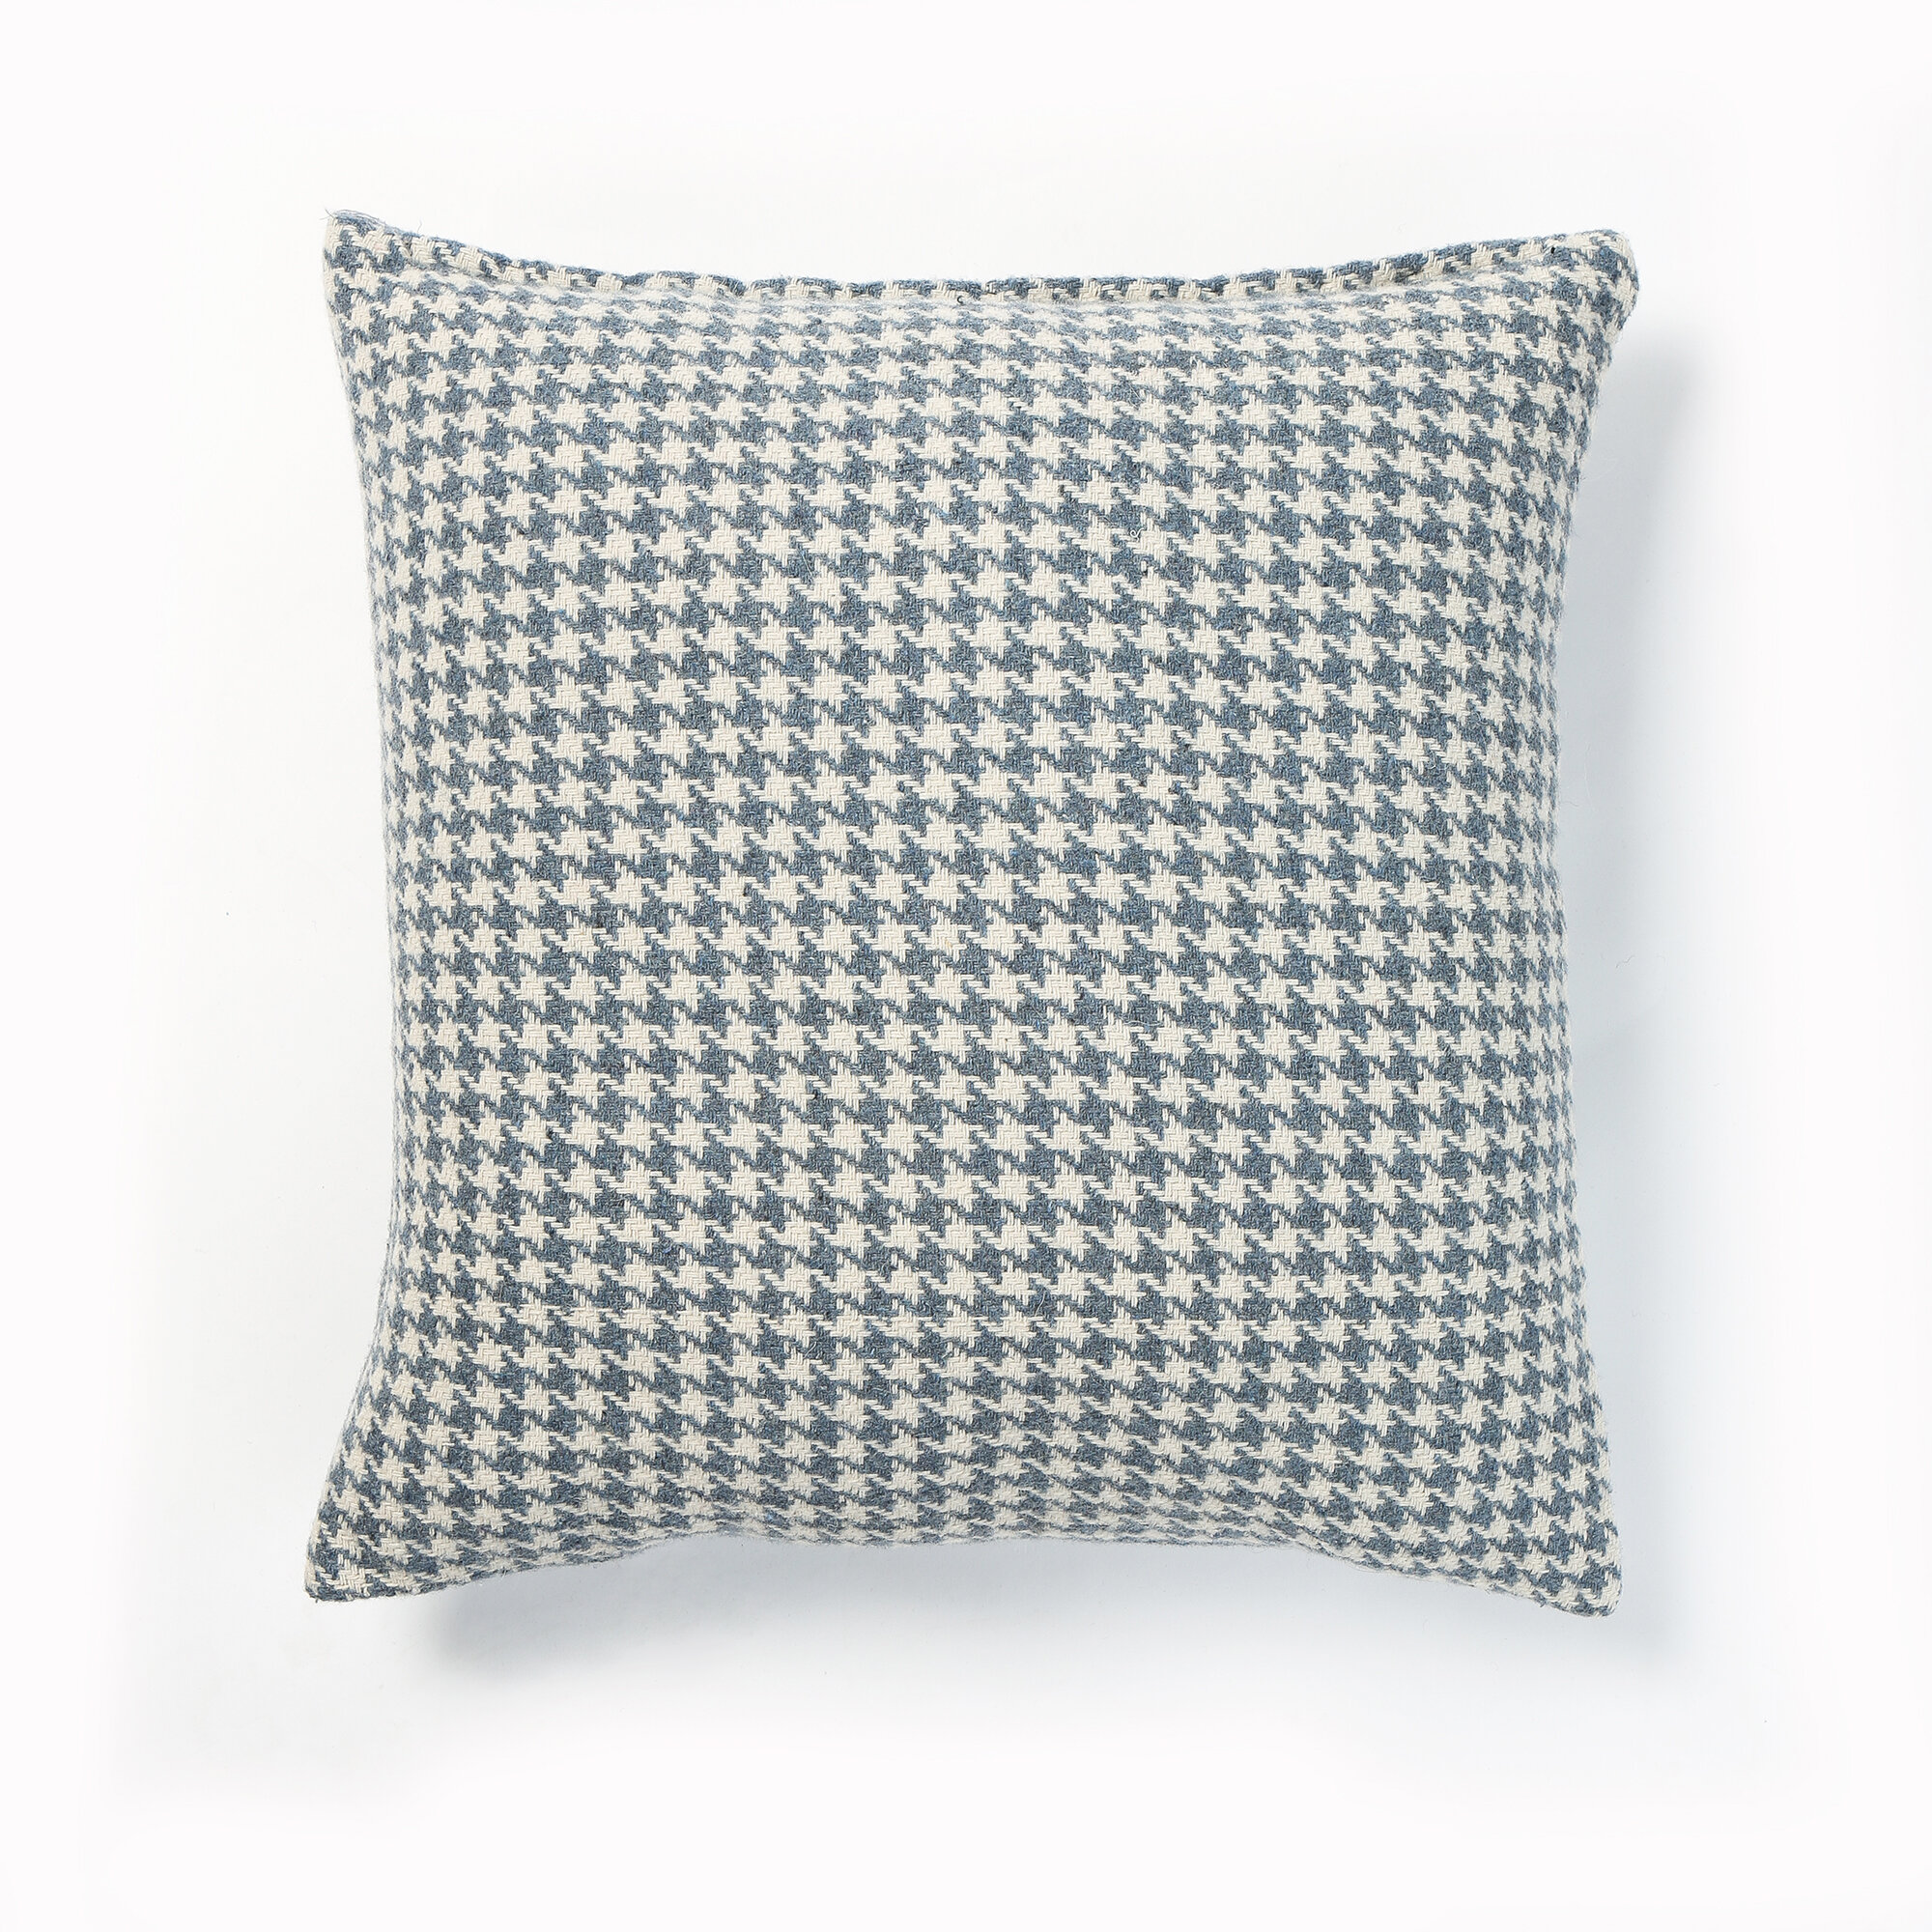 Best Home Fashion, Inc. Felted Wool Blend Houndstooth Pillow Cover ...